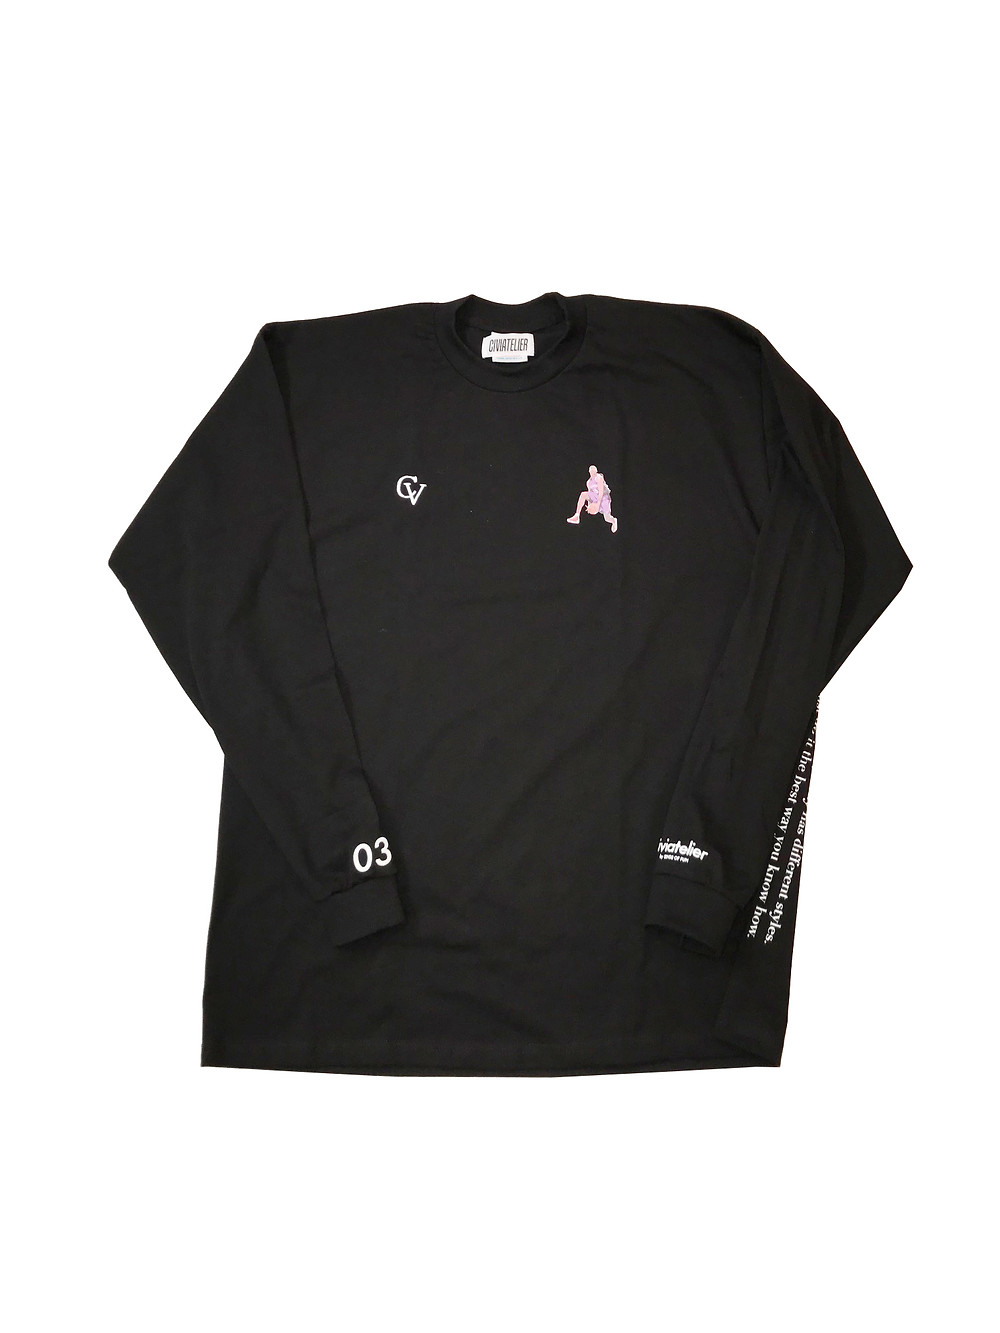 No.1 Dunker Long Sleeve Tee